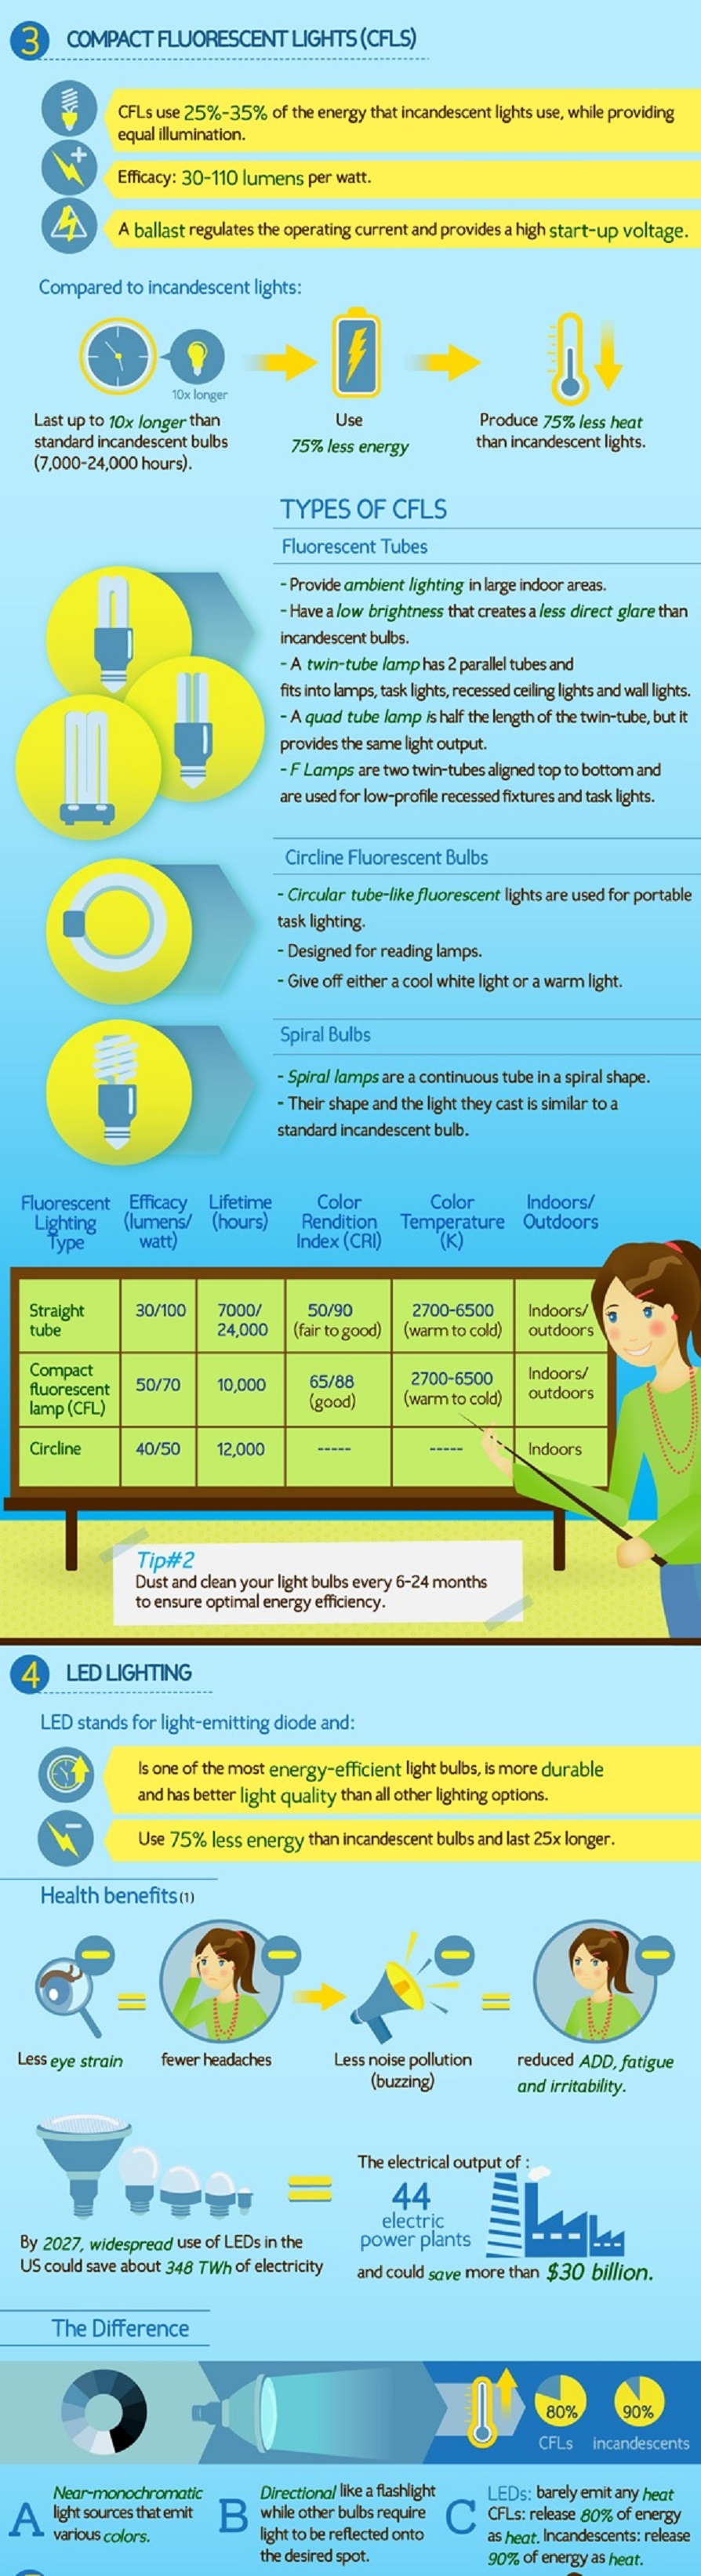 CFLs and LED - the differences and advantages